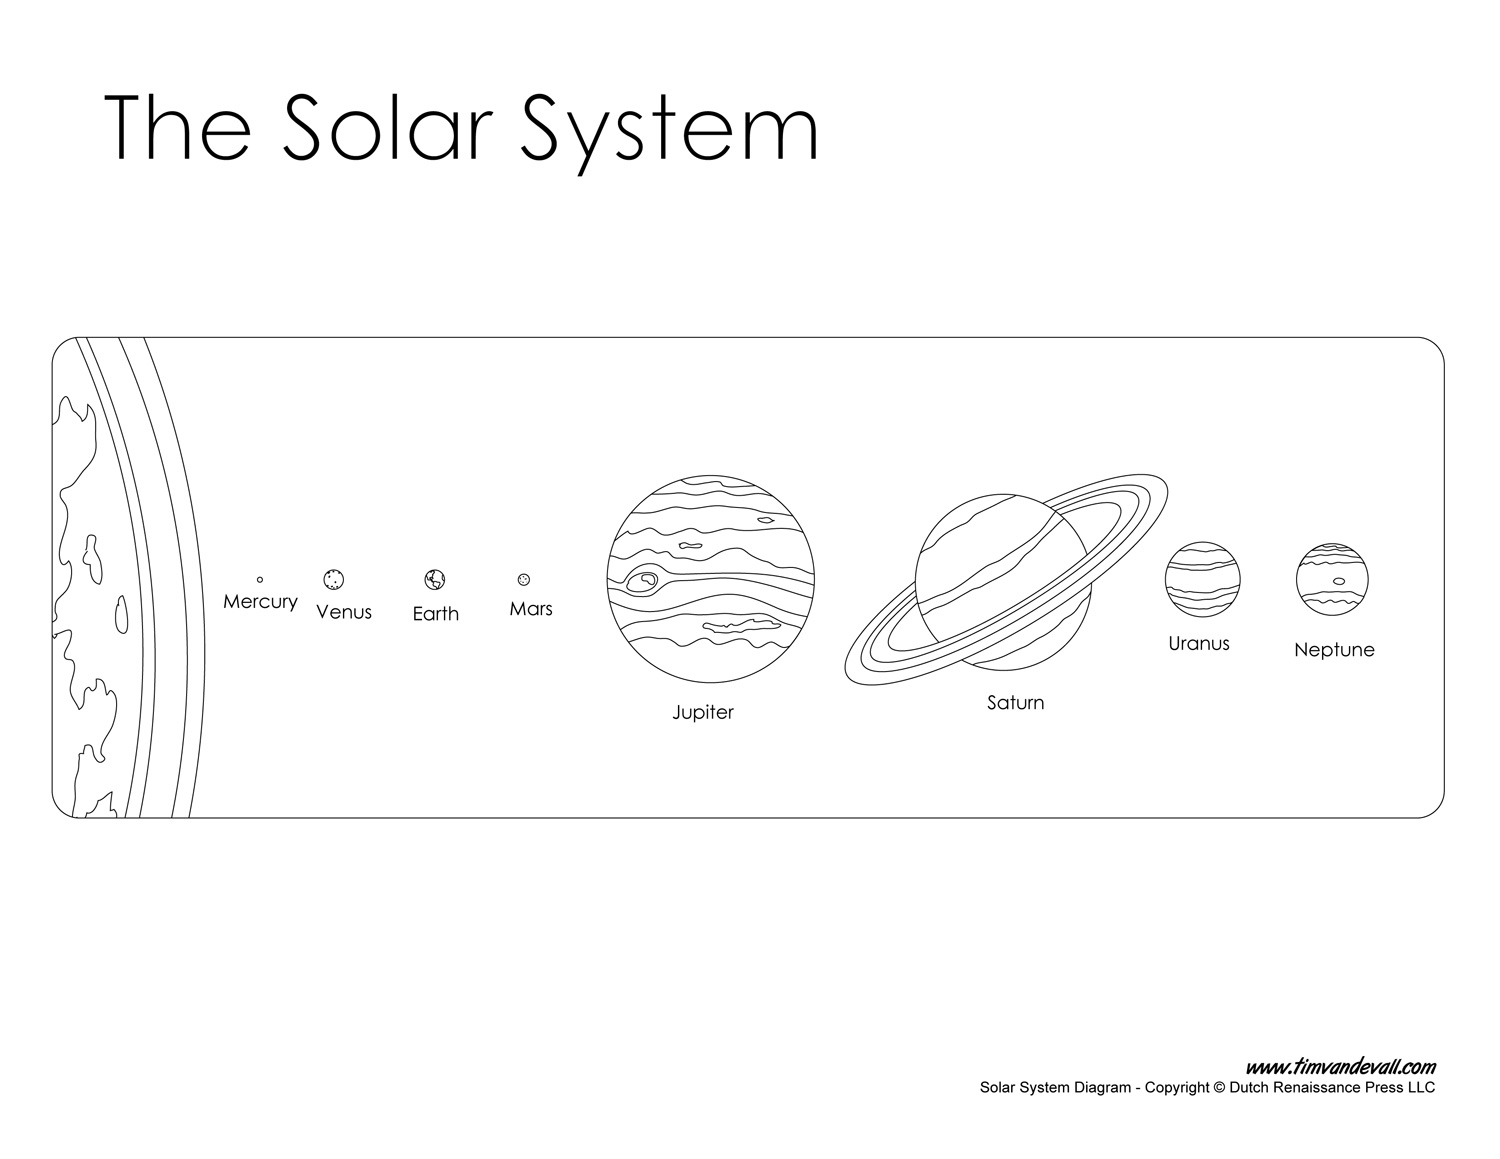 Solar system diagram learn the planets in our solar system solar system diagram for kids ccuart Gallery